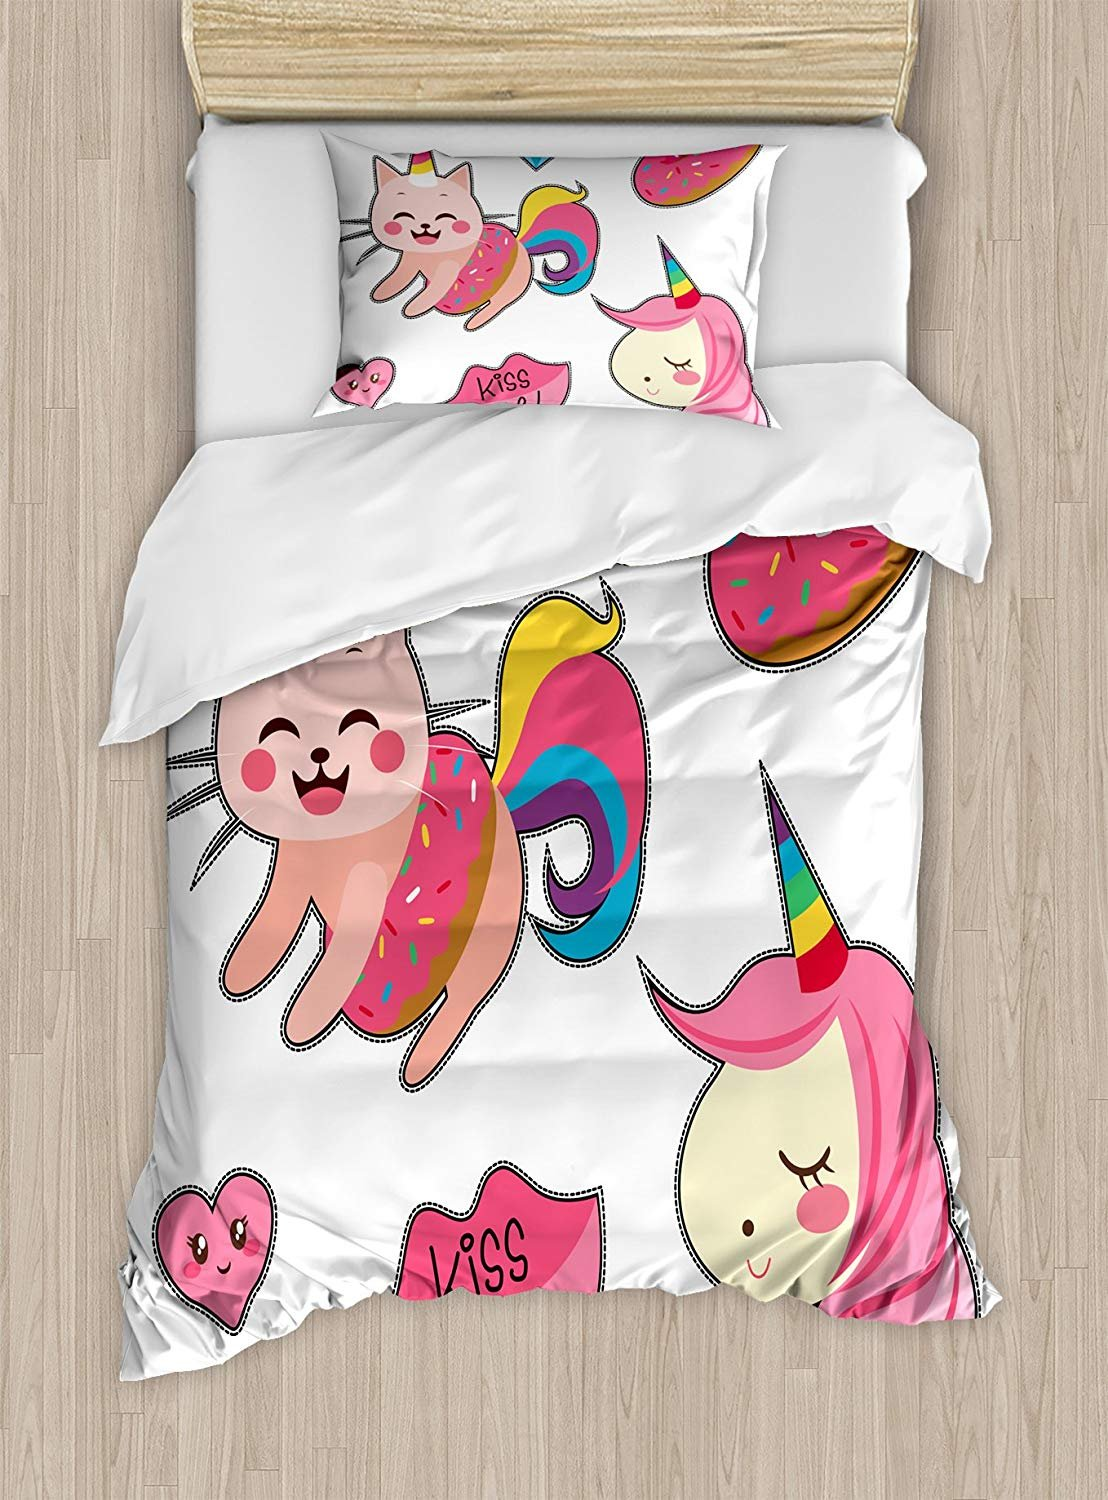 Twin XL Extra Long Bedding Set, Unicorn Cat Duvet Cover Set, Cute Fantastic Icons for Girls Magical Characters Mythological Mascots, Cosy House Collection 4 Piece Bedding Sets